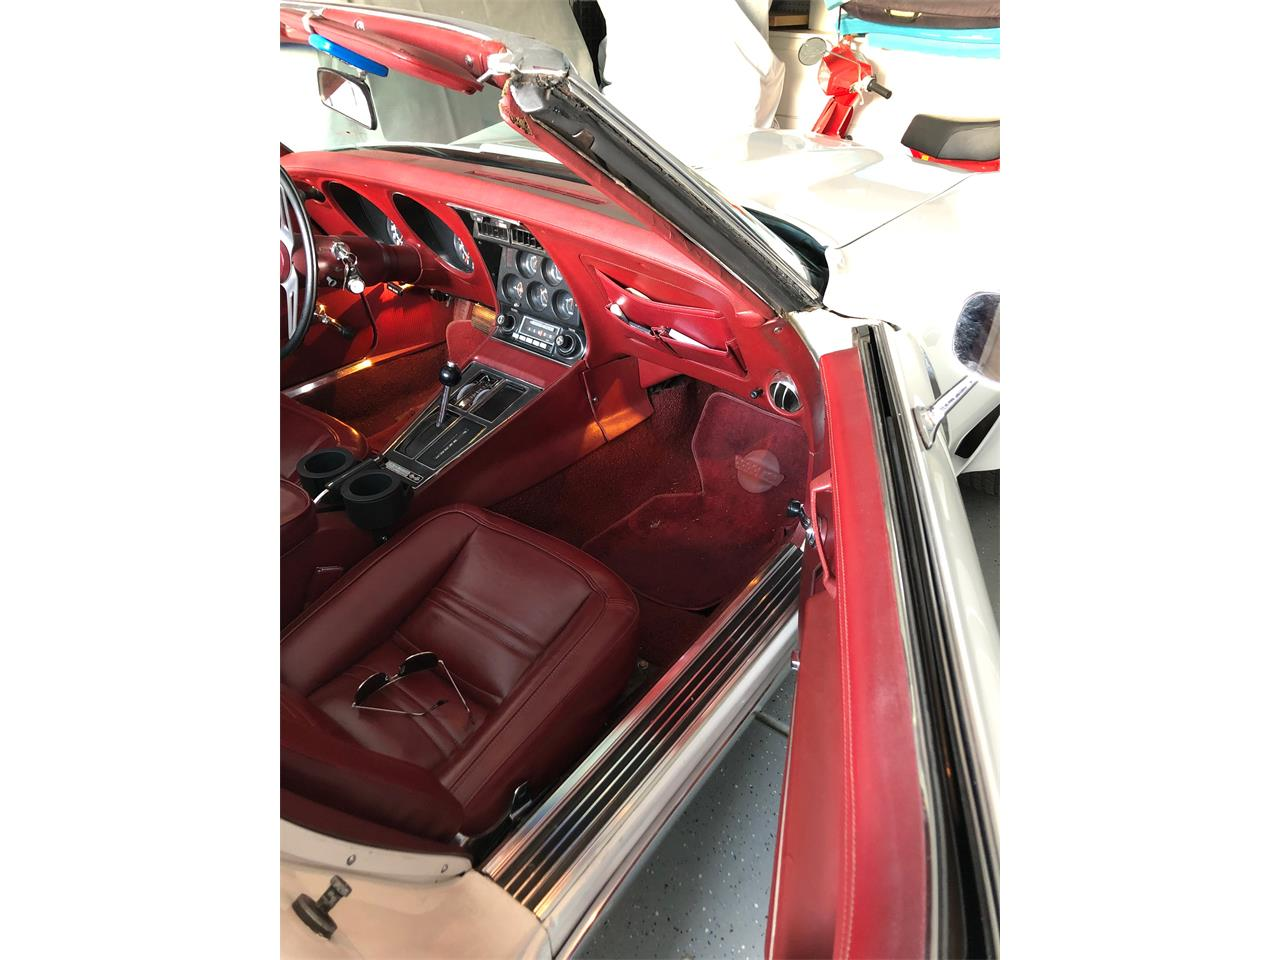 Large Picture of Classic '73 Corvette - $29,900.00 Offered by a Private Seller - Q67L